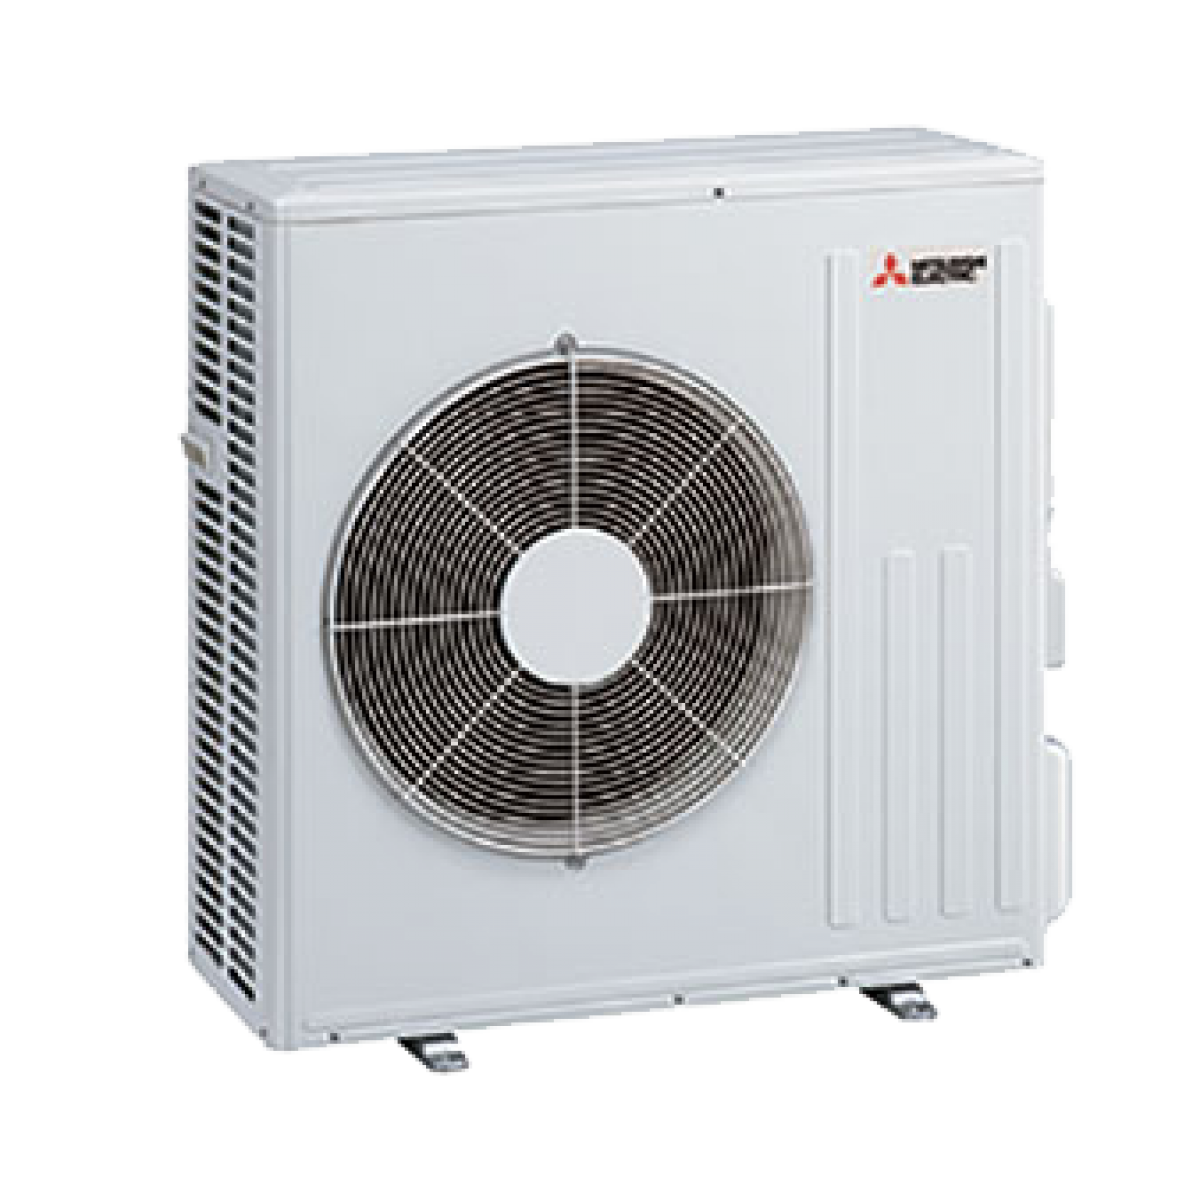 #775A54 Mitsubishi 18 000 BTU Heat Pump Hyper Heat 21 SEER System  Best 5403 Mitsubishi Heating And Cooling Systems photos with 1200x1200 px on helpvideos.info - Air Conditioners, Air Coolers and more